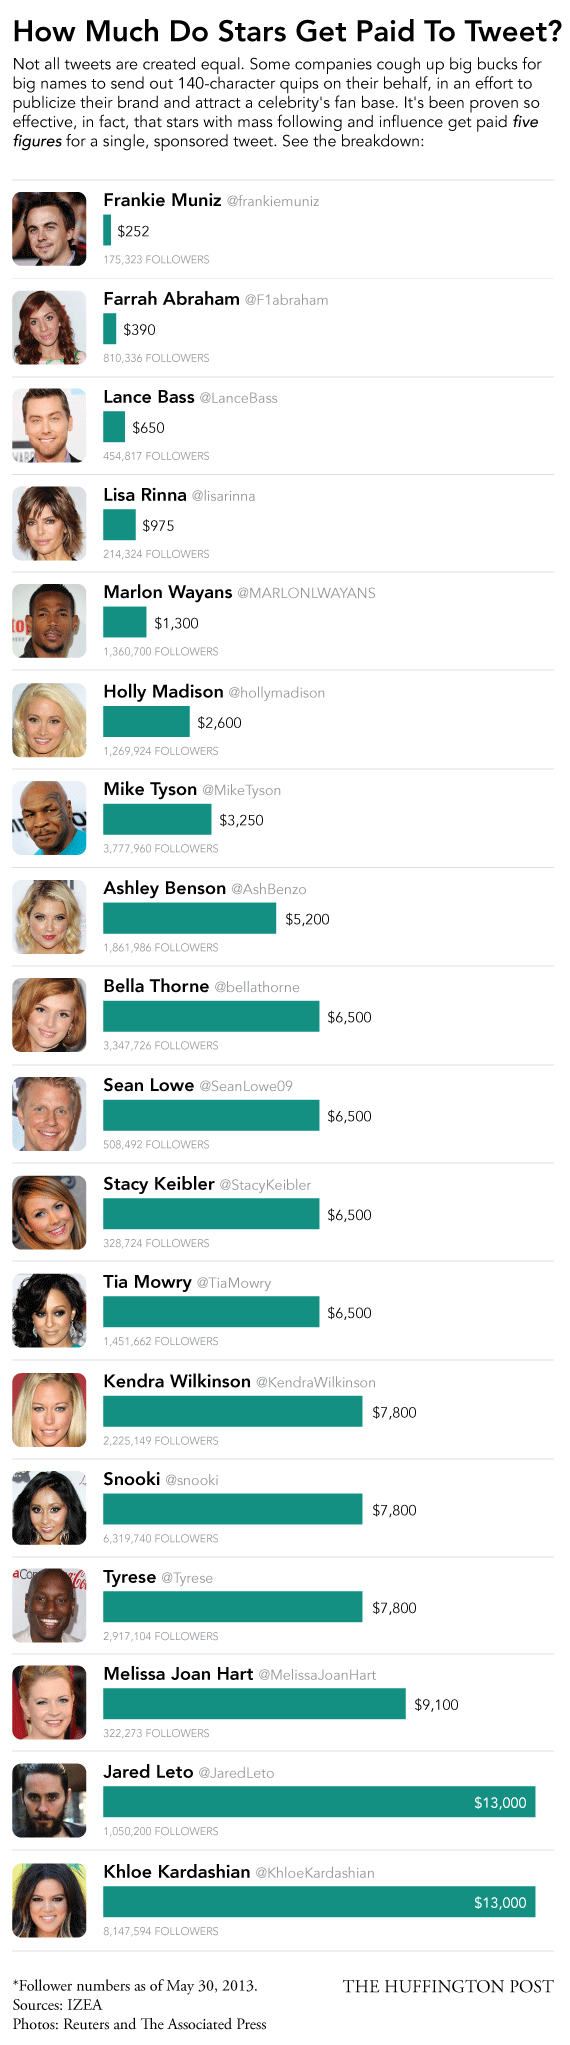 Tweet, paid to tweet, celebrities, infographic,